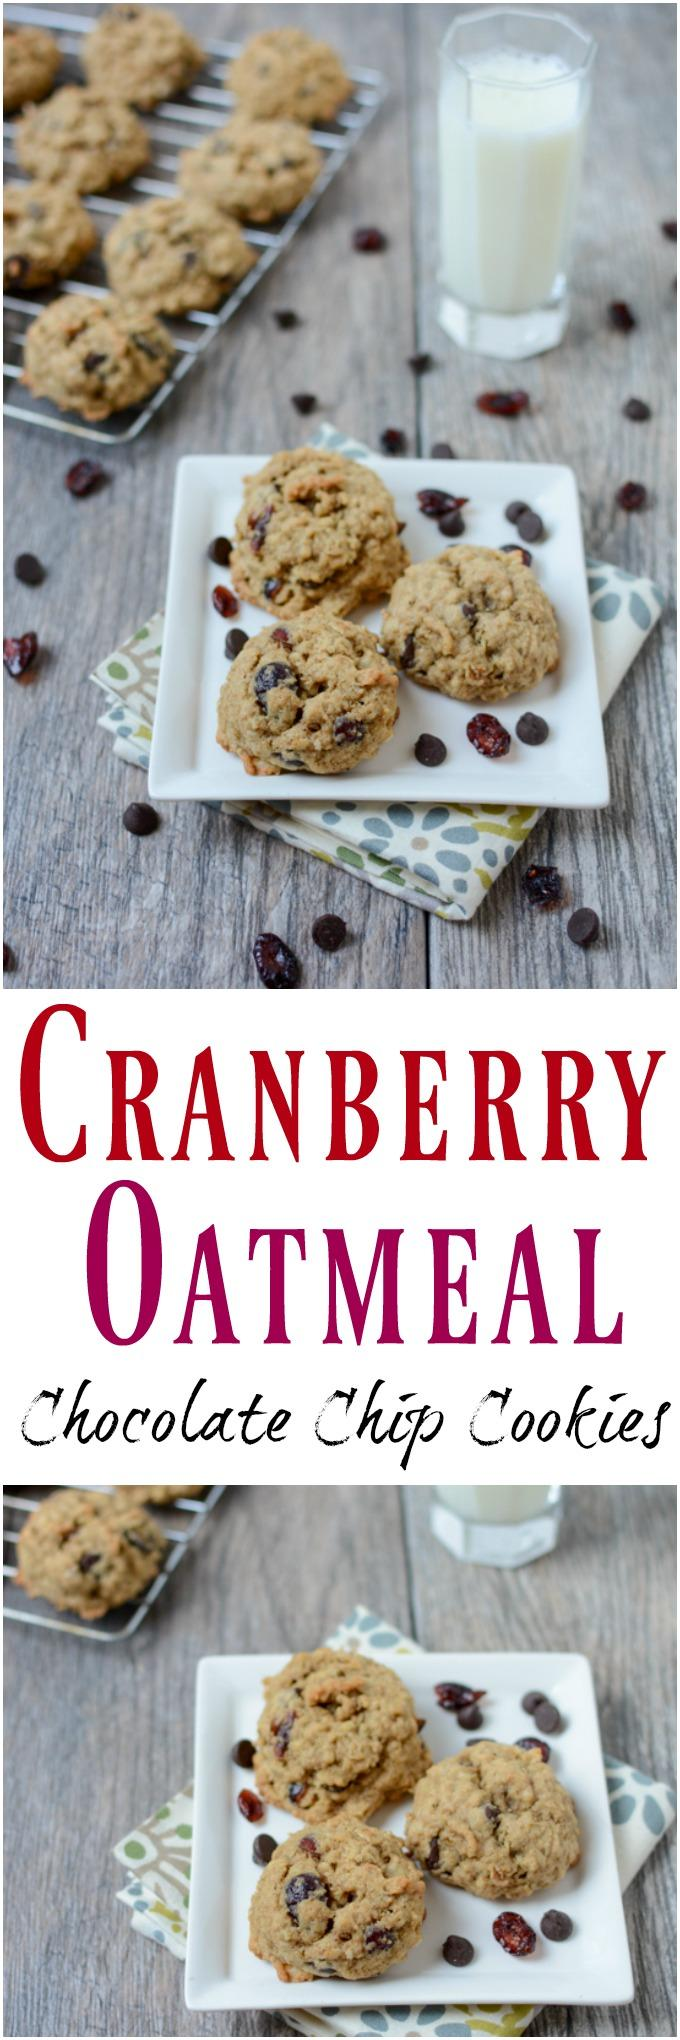 These Cranberry Oatmeal Chocolate Chip Cookies are fluffy, chewy and full of delicious mix-ins. They're easy to make when a dessert craving strikes!